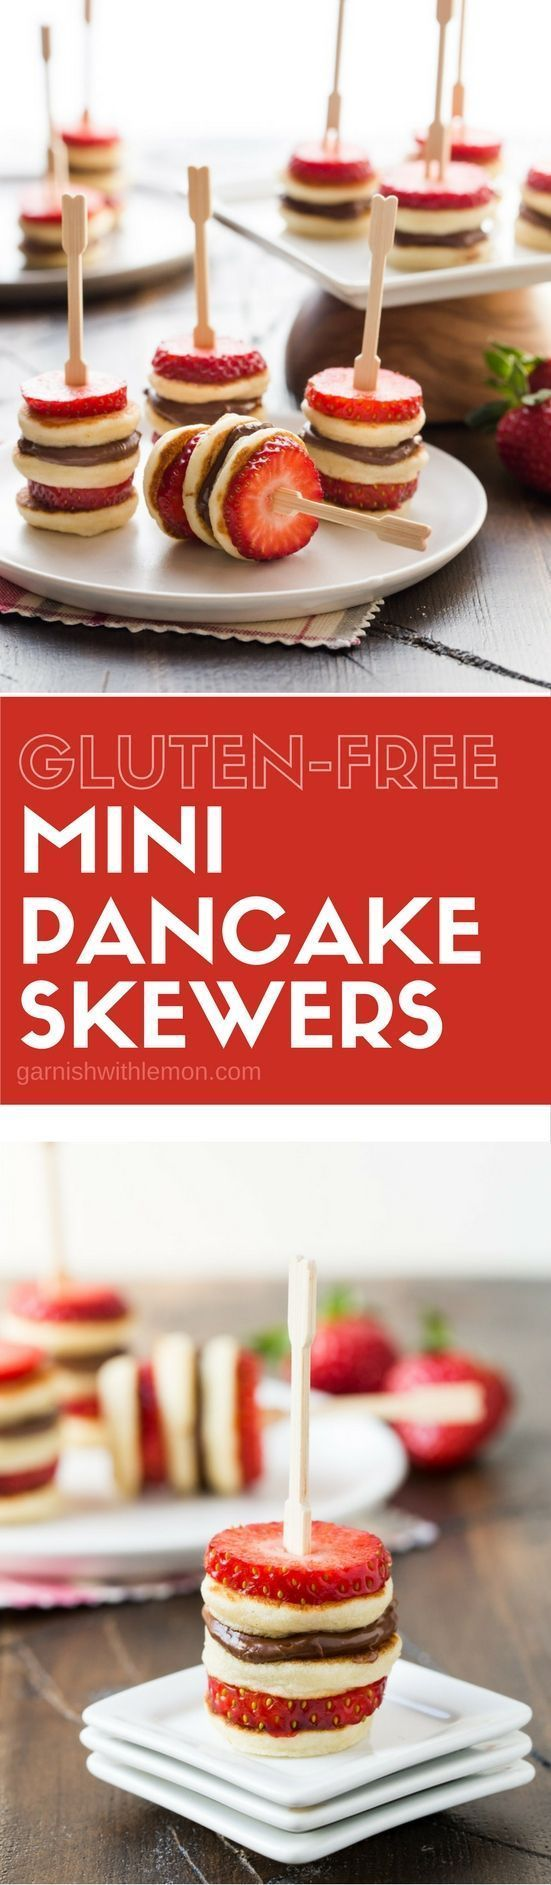 Gluten-Free Mini Pancake Skewers - Garnish with Lemon #festmad